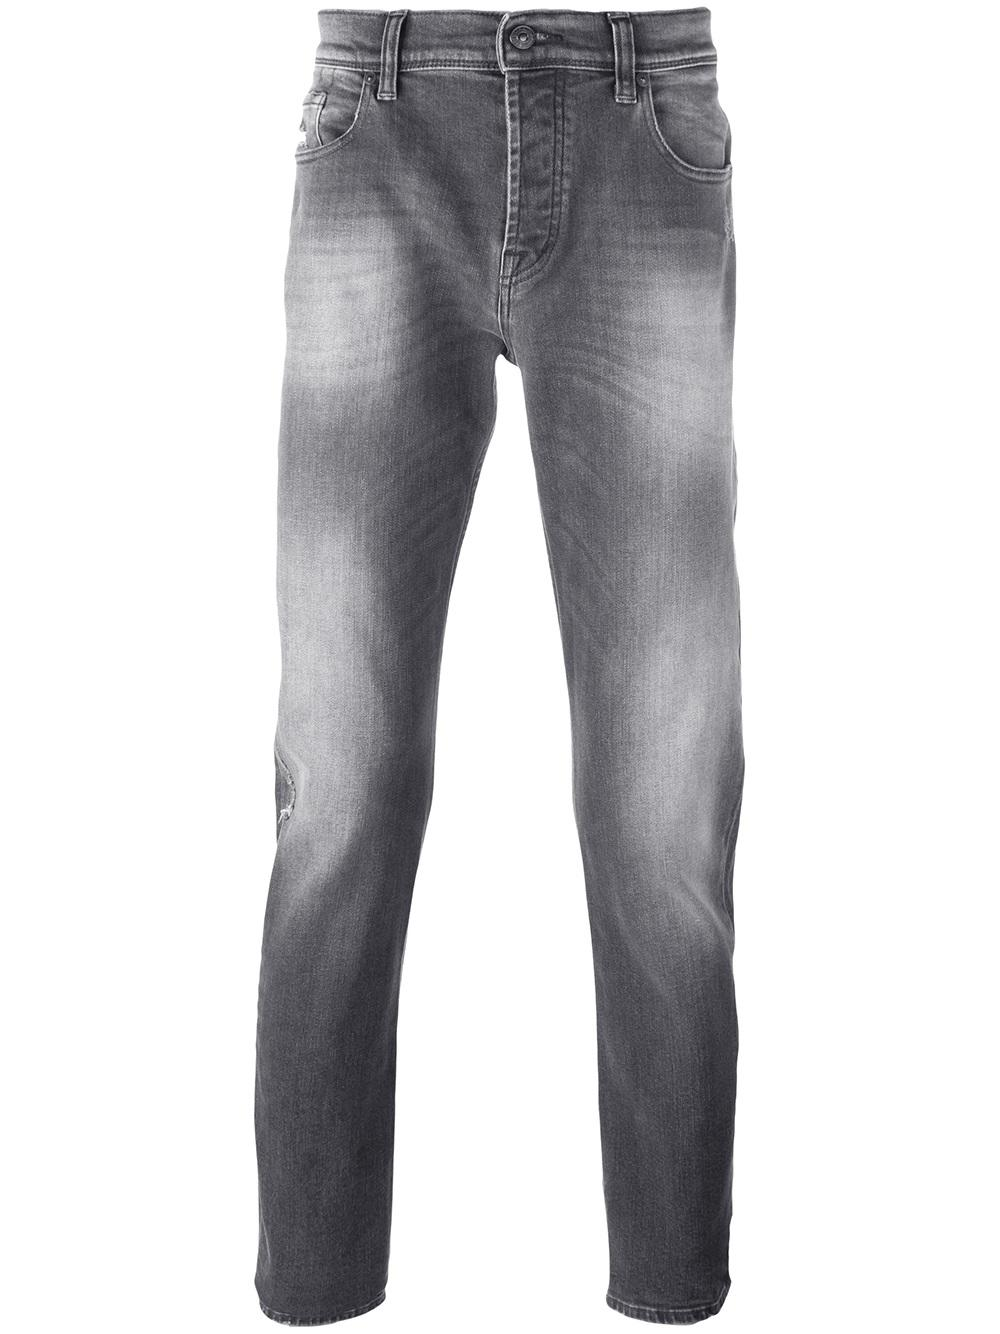 7 For All Mankind CHAD GRIGIO